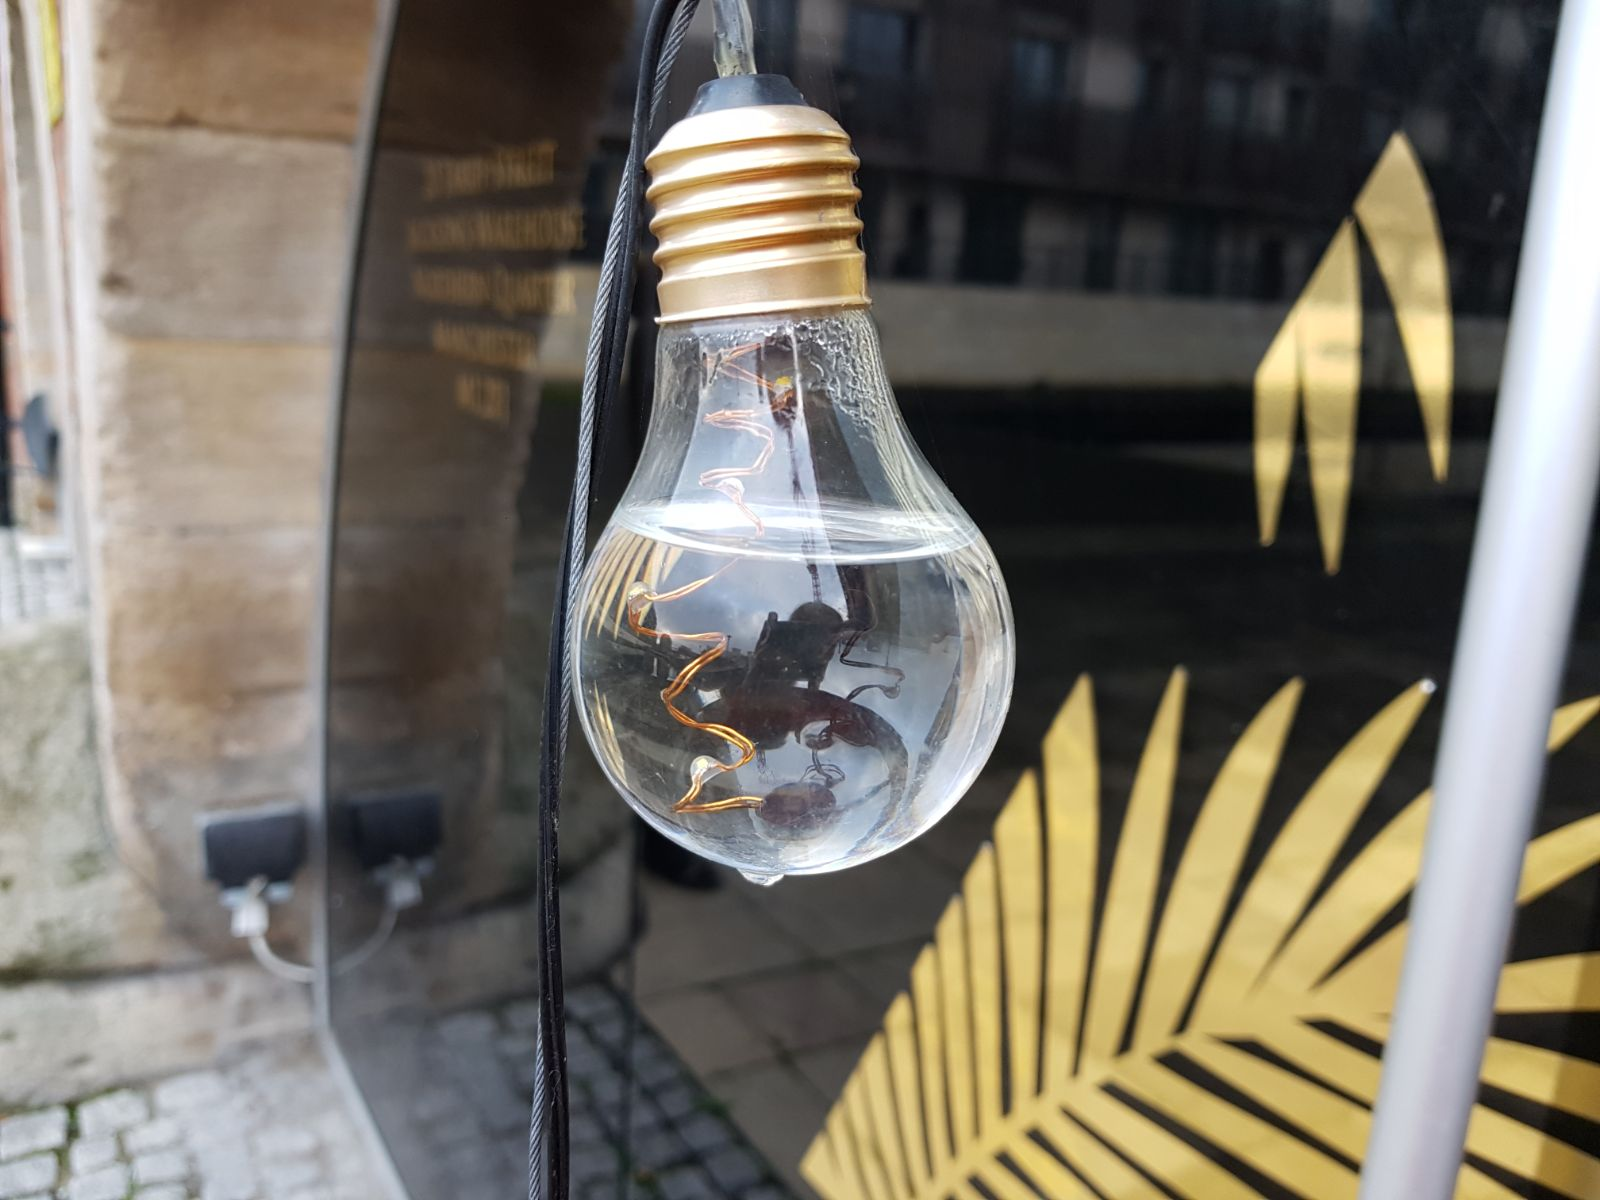 Weird lightbulb filled with water